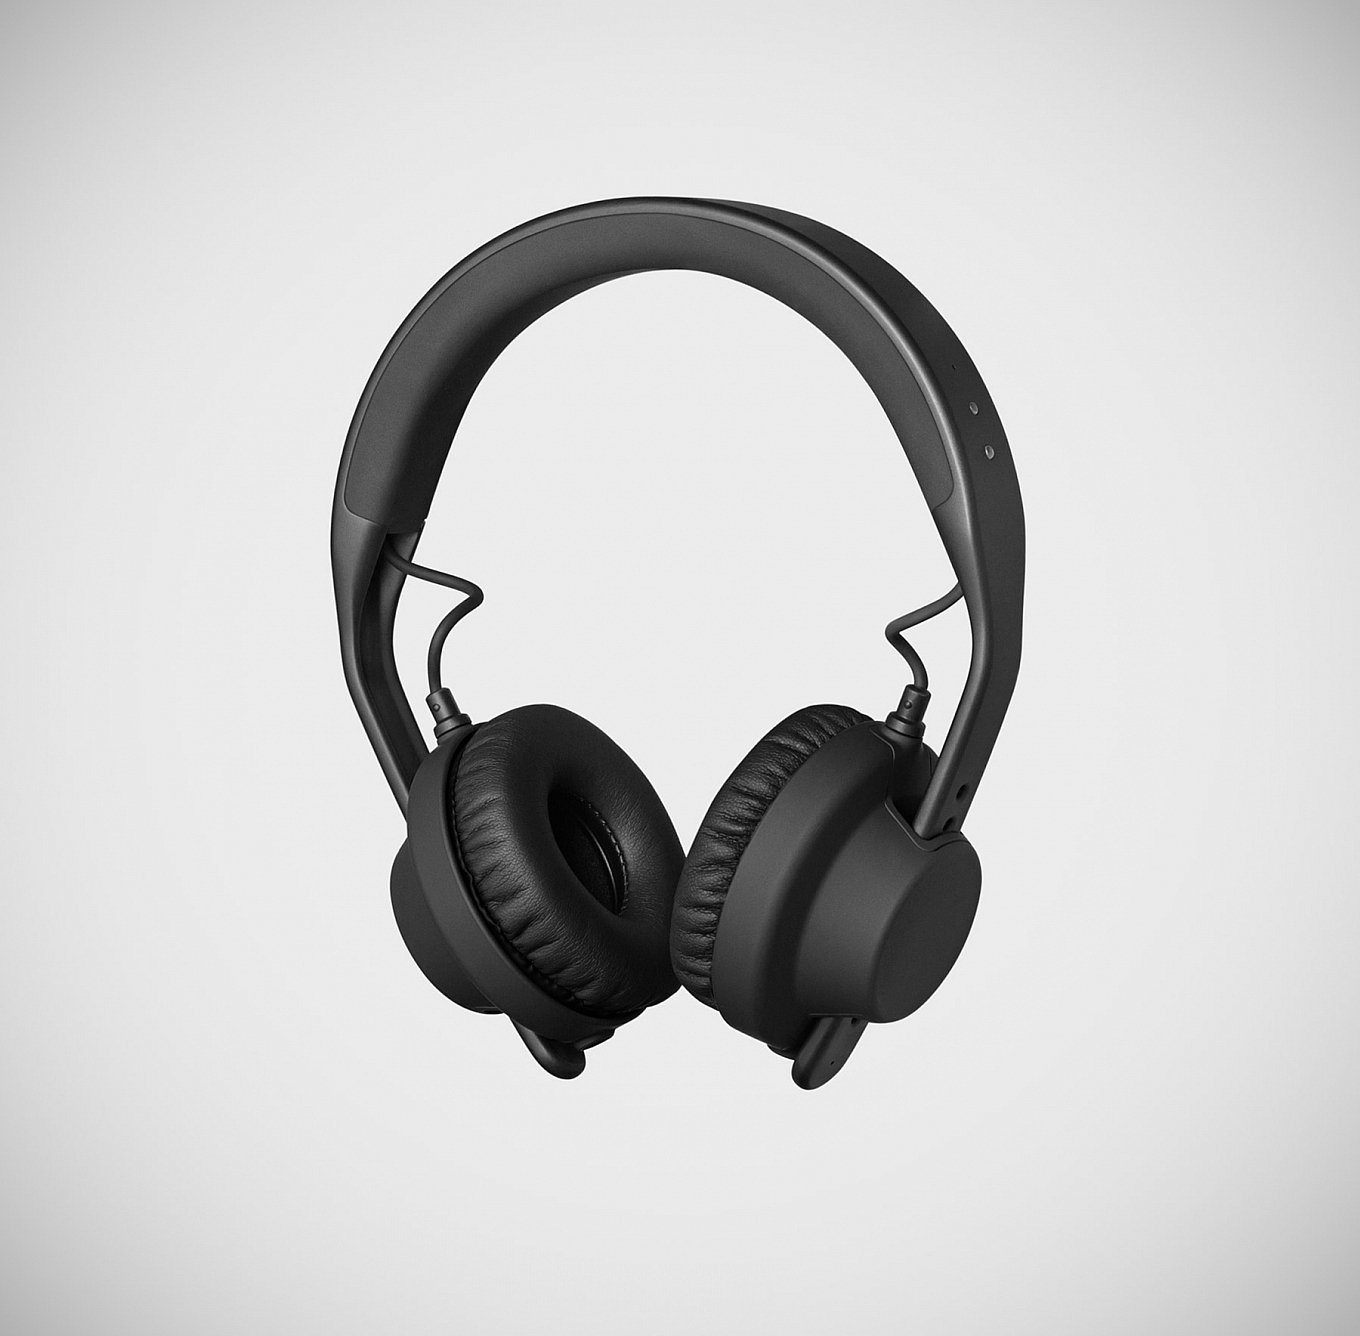 tma-2-modular-wireless-headphone-system-2